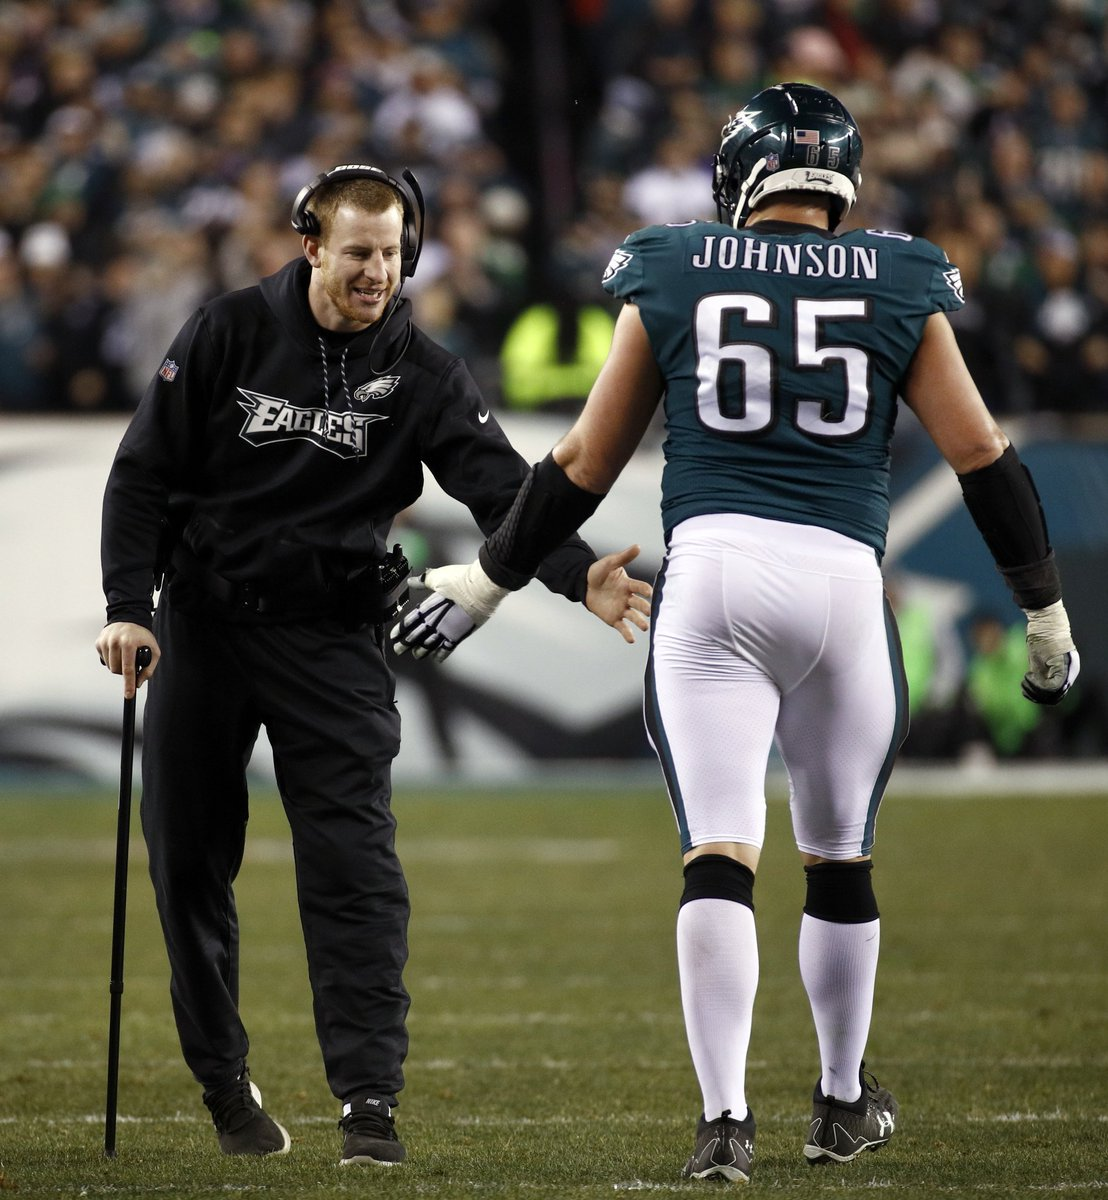 RT @Lanejohnson65: 1 MORE FOR PHILLY! #SuperBowlBound #DogsGottaEatAgain #FlyEaglesFly https://t.co/YALwVYTp4q